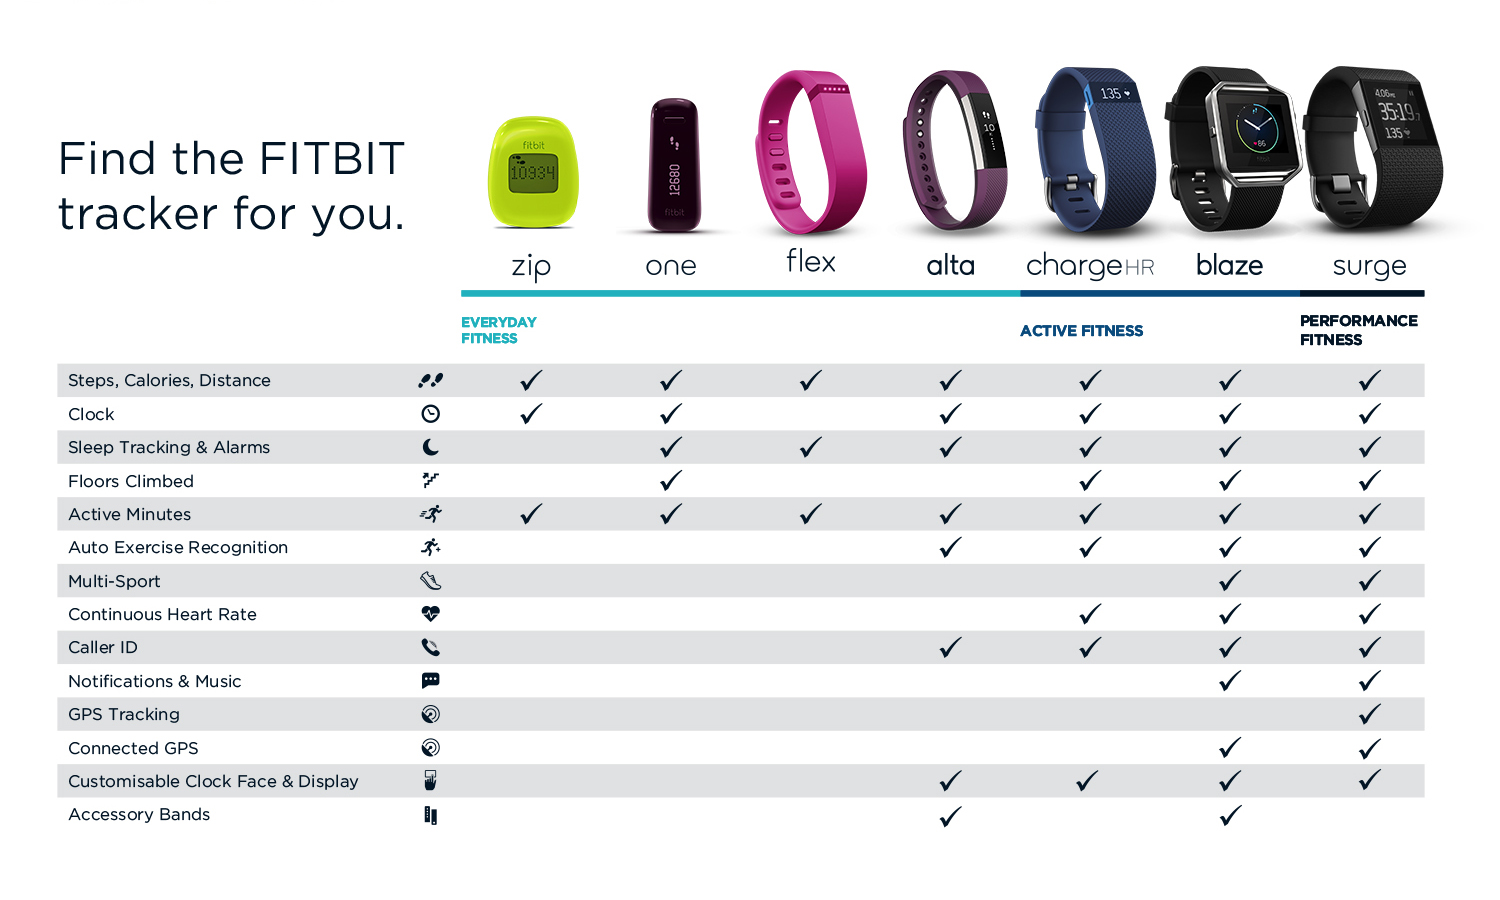 Compare fitbit models.